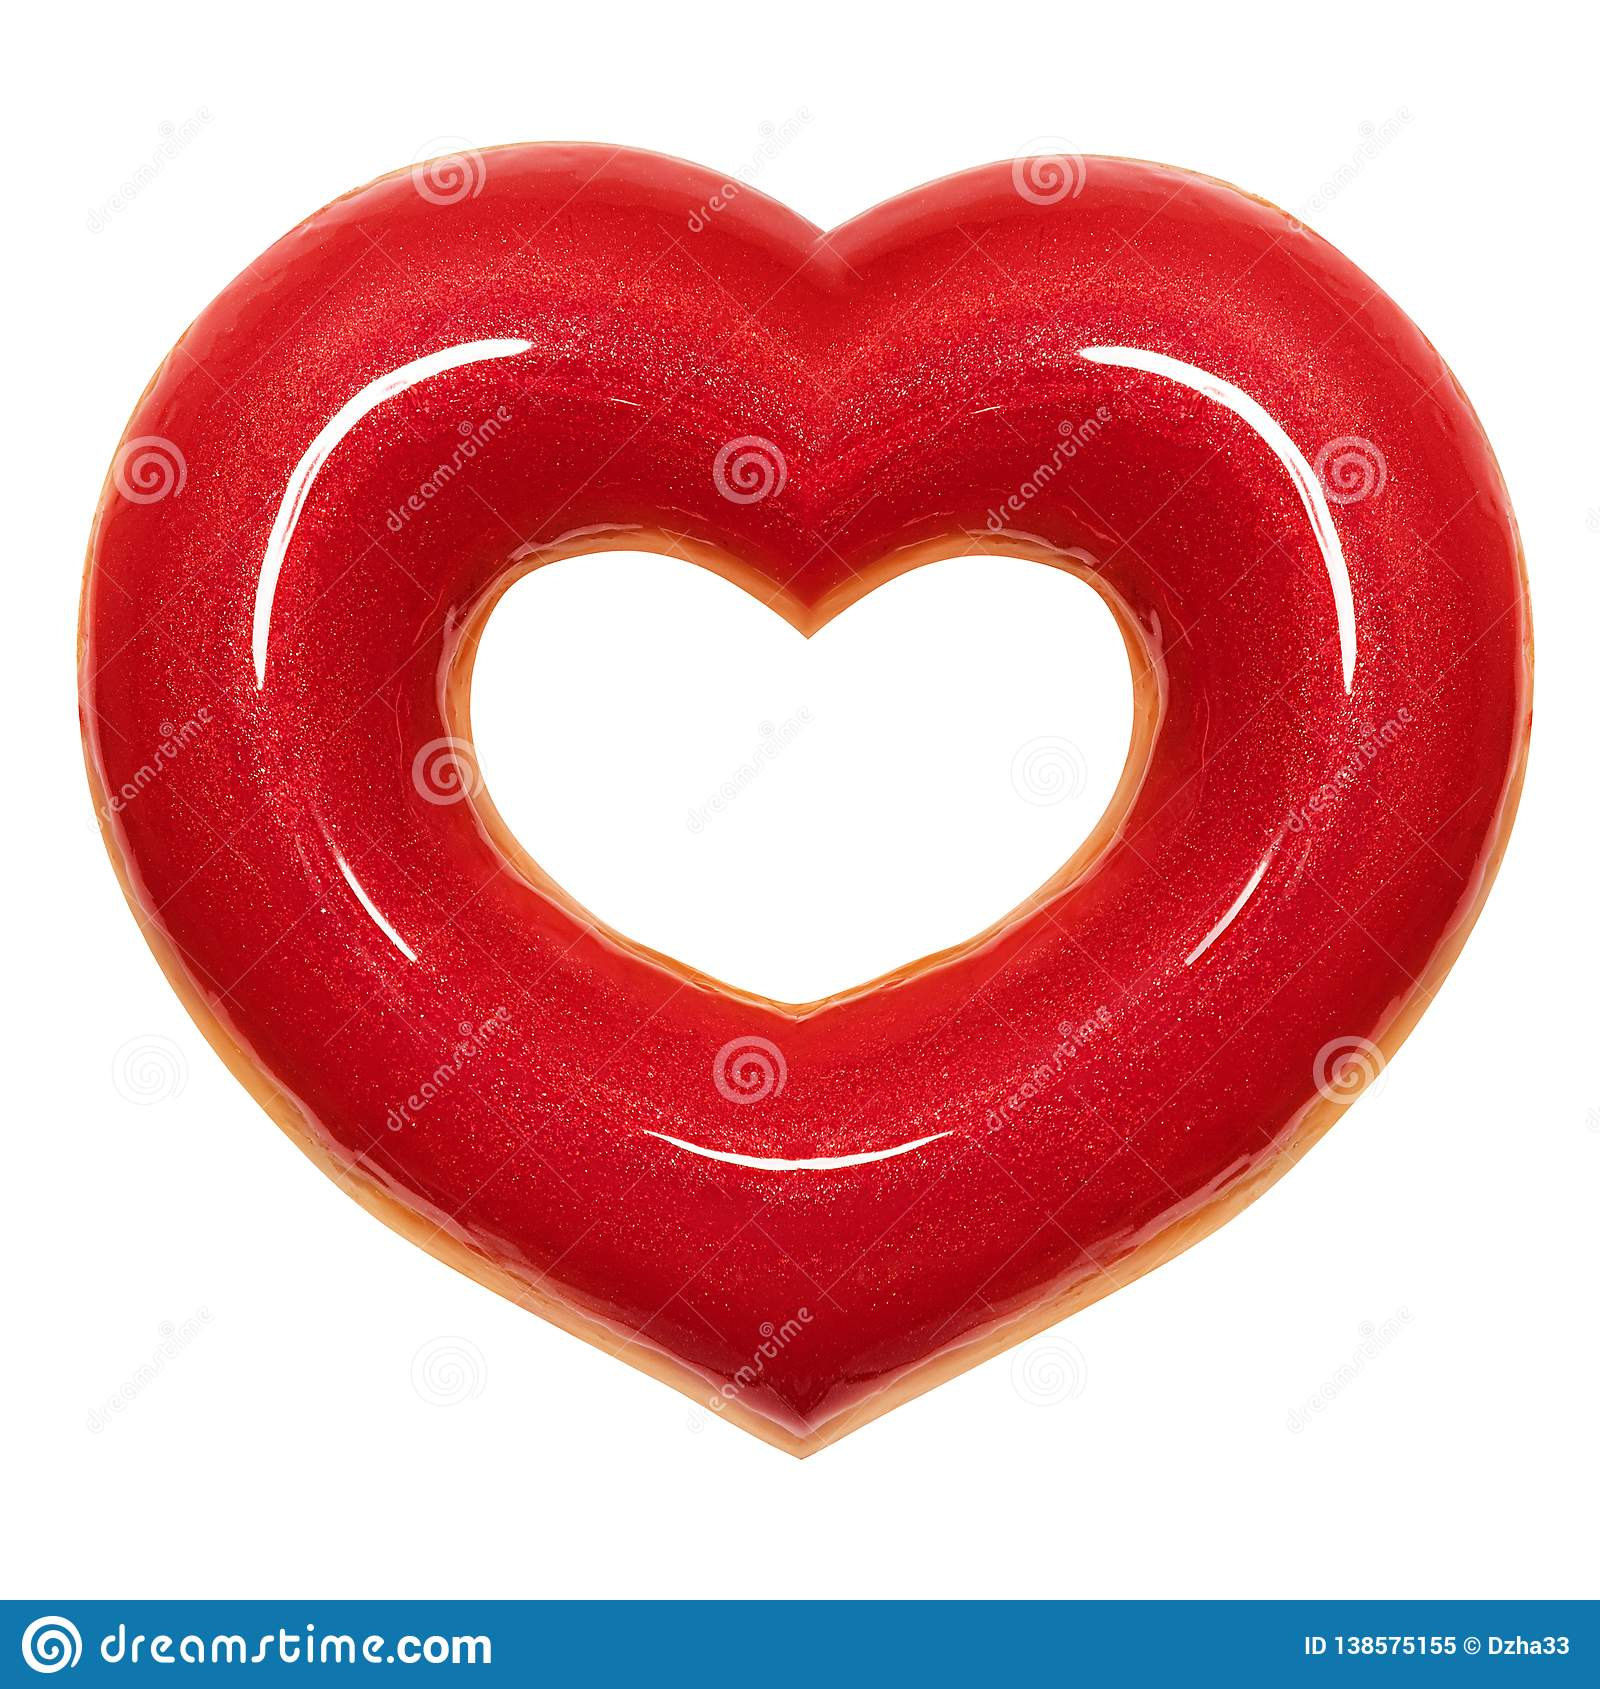 Donut red heart shape with red glaze front view isolated white background with clipping path. Donut Valentines day.